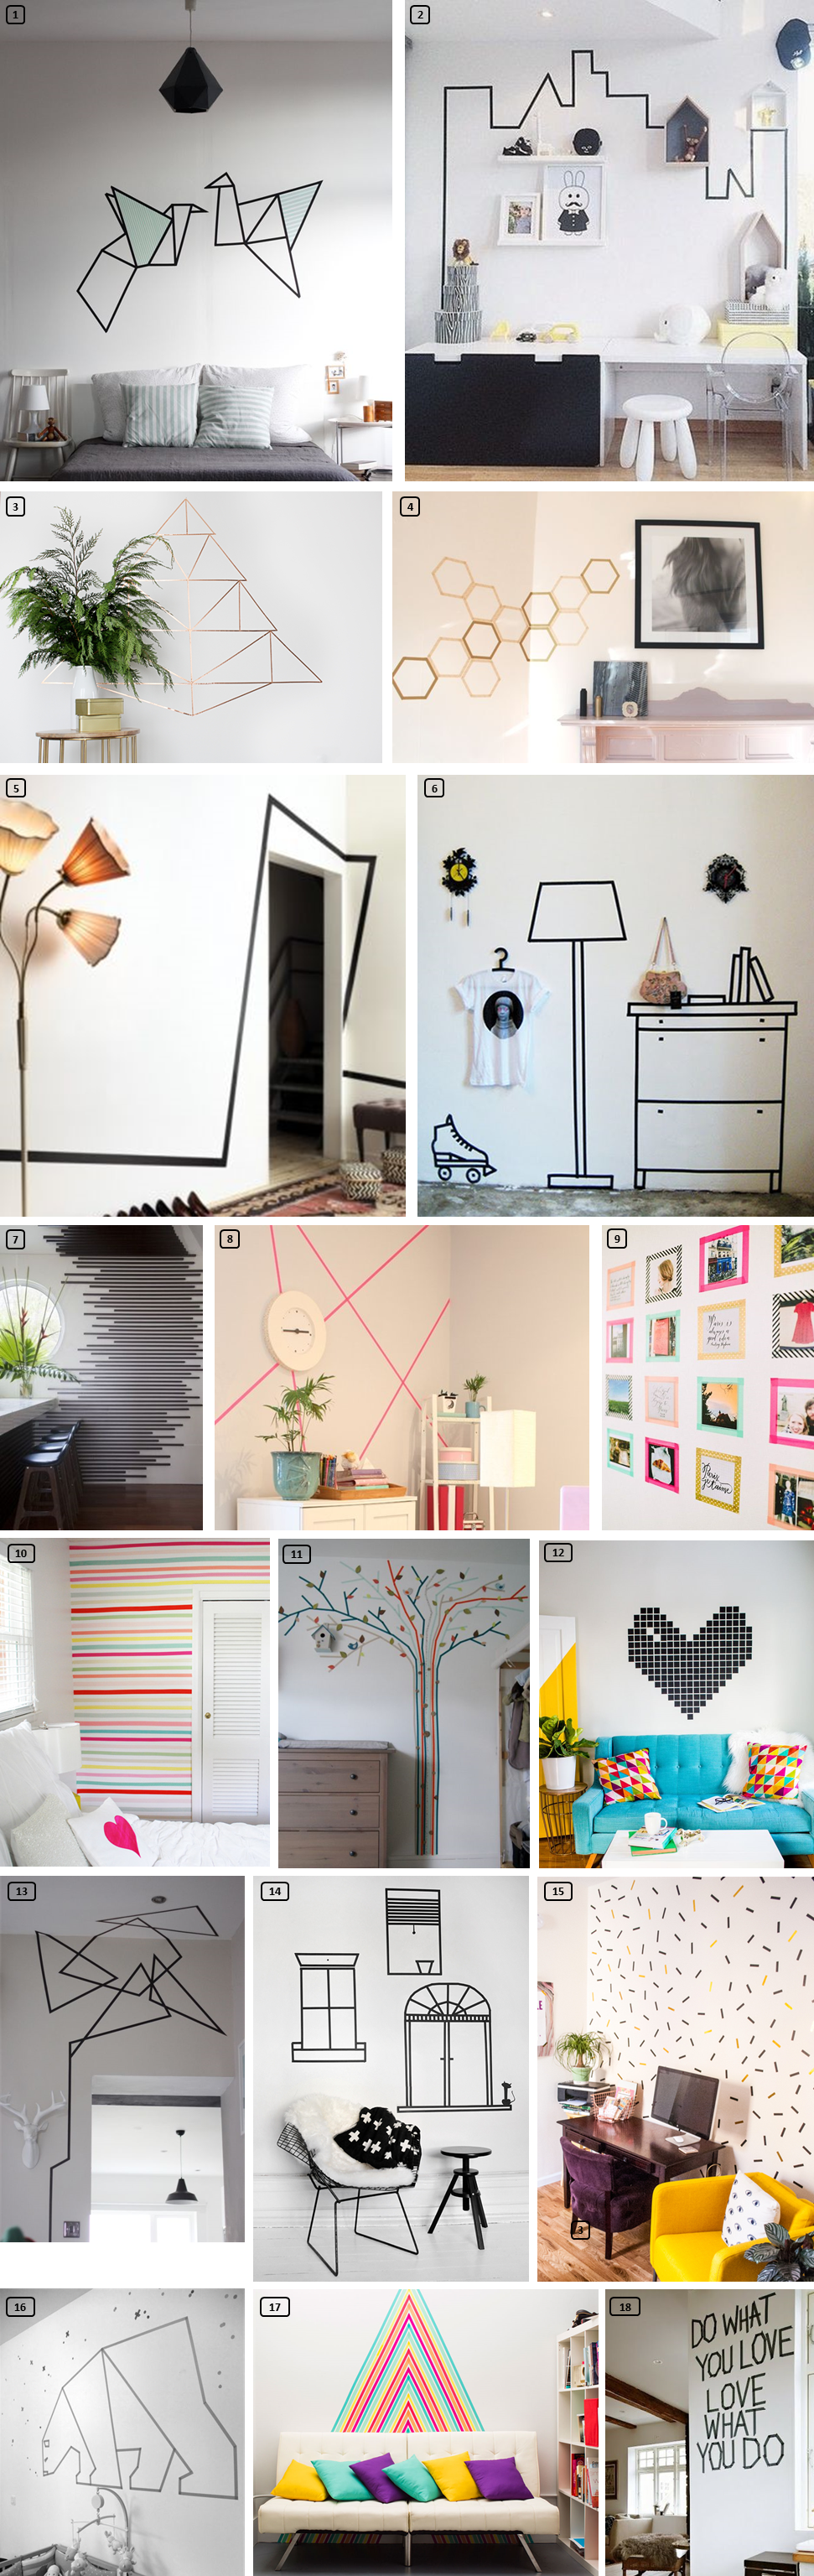 18 ideas of black and colored masking tape on white walls